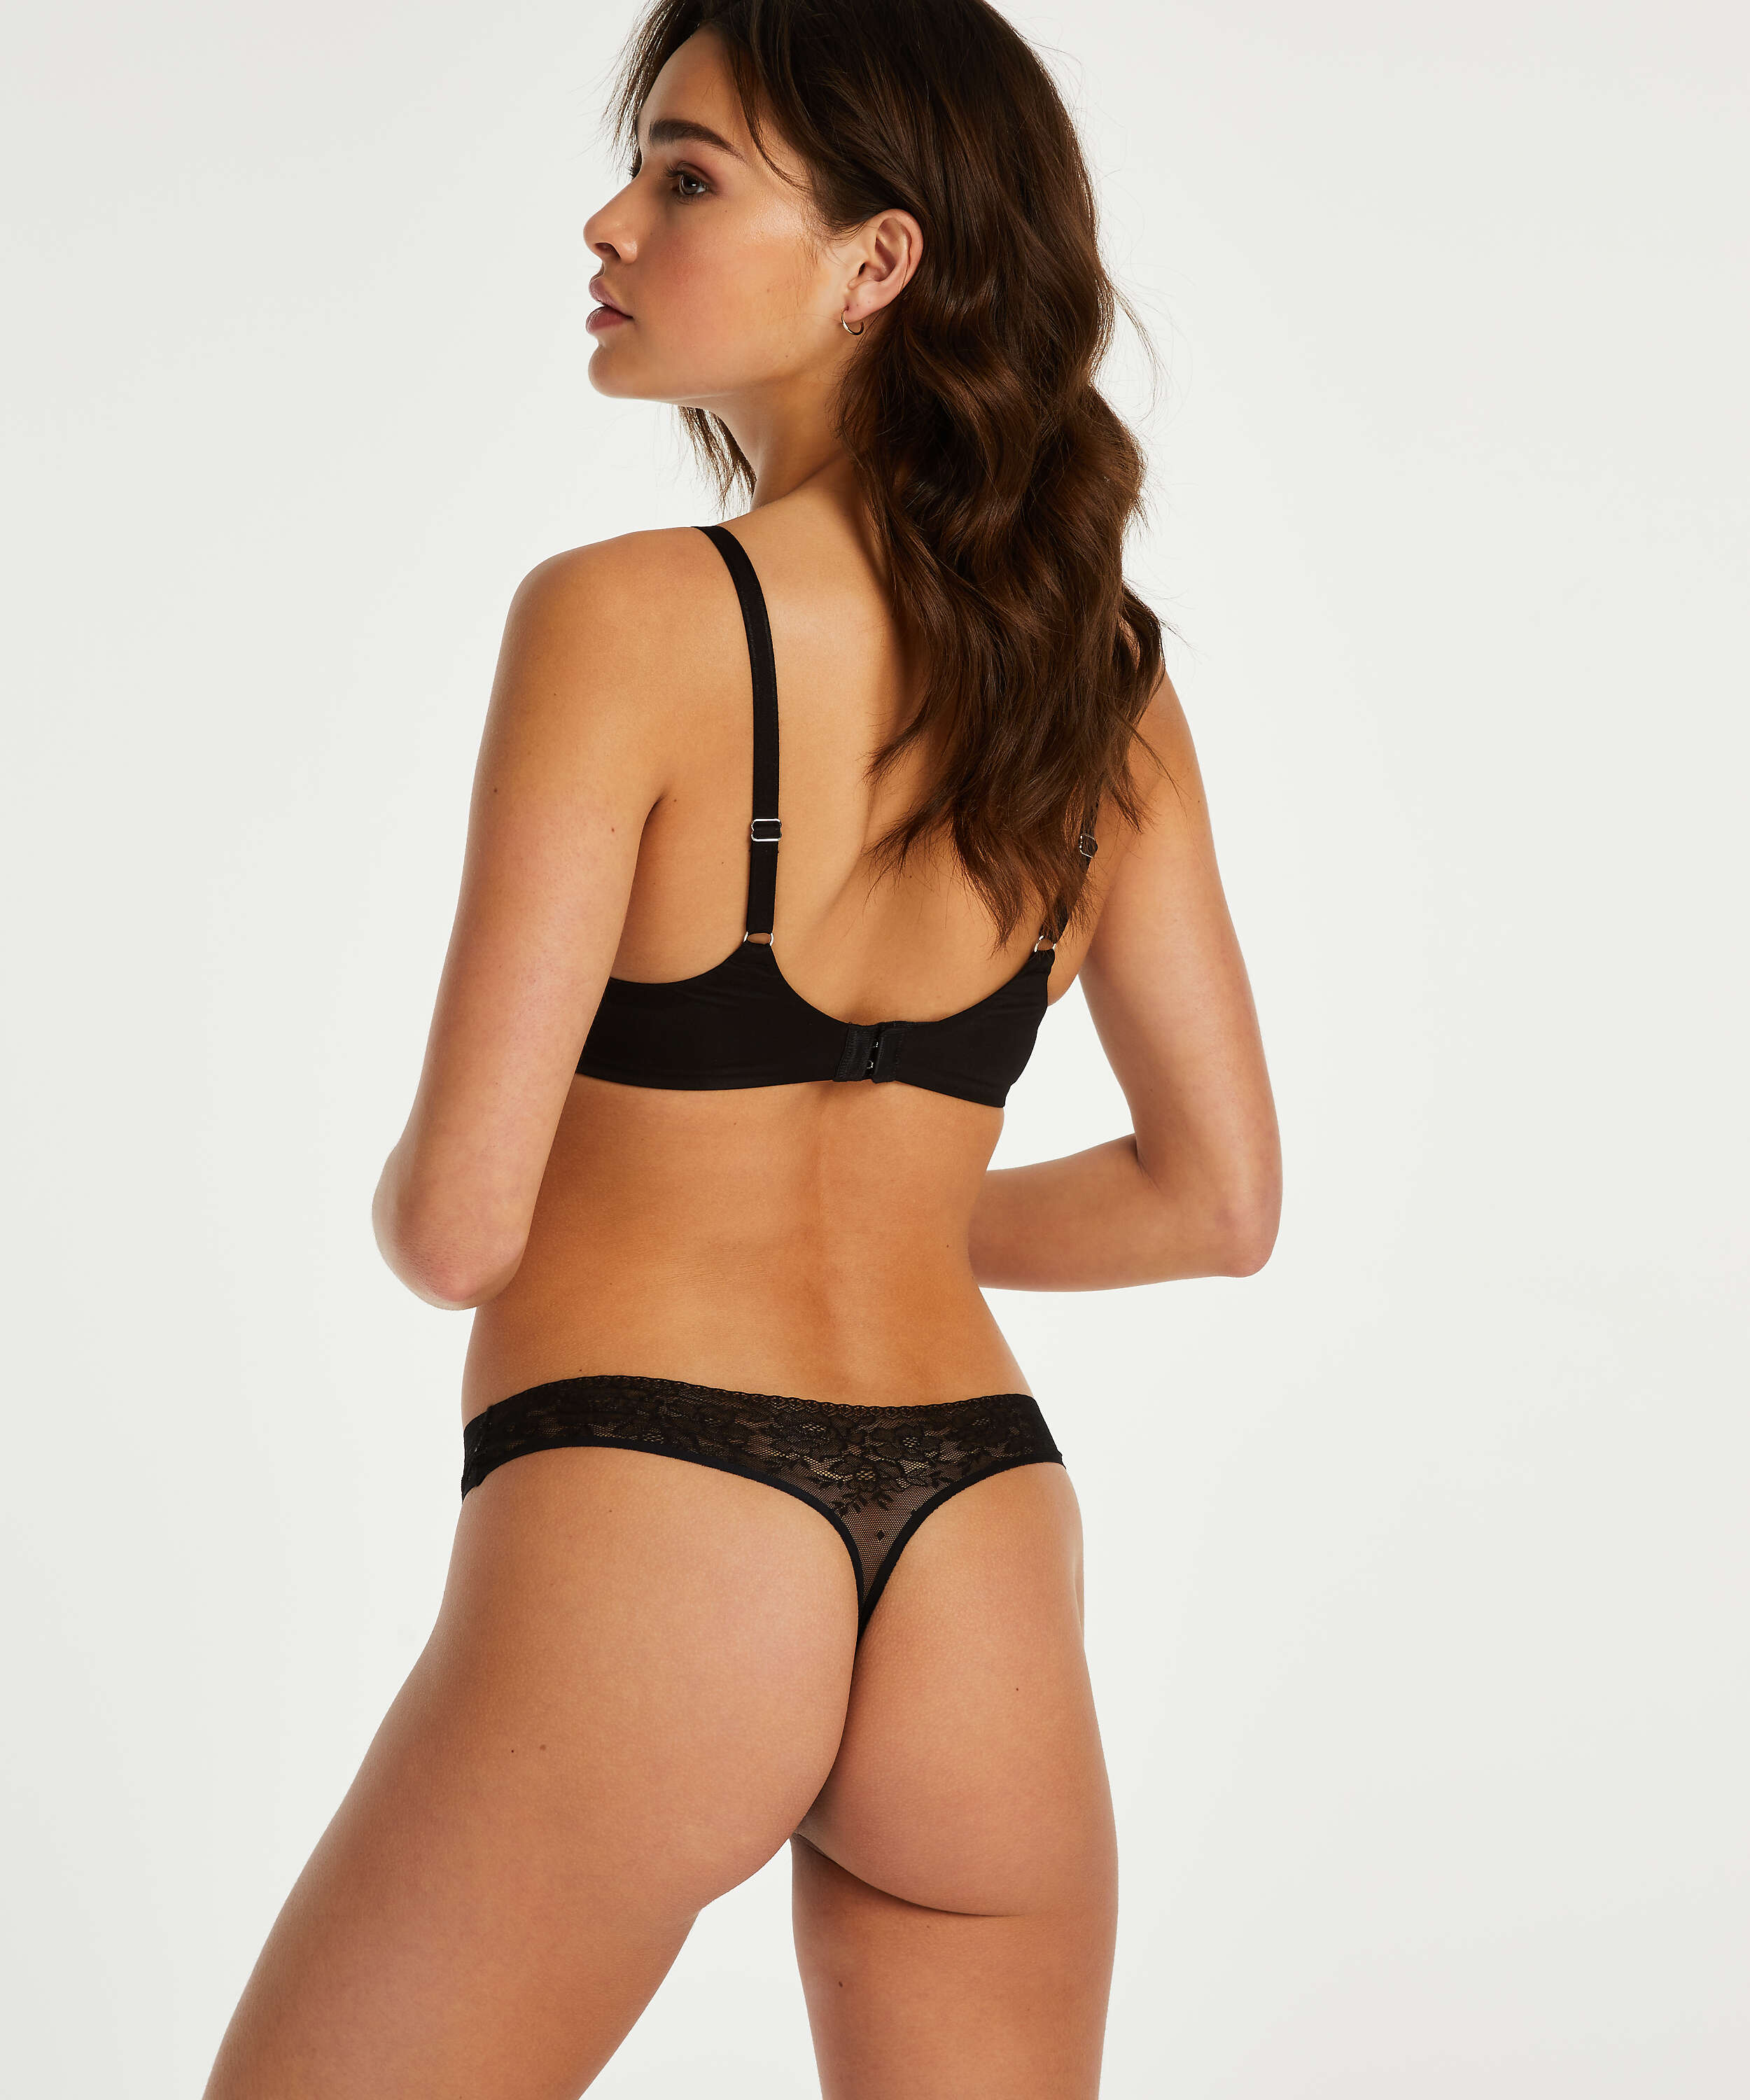 Allover Lace Invisible thong, Black, main